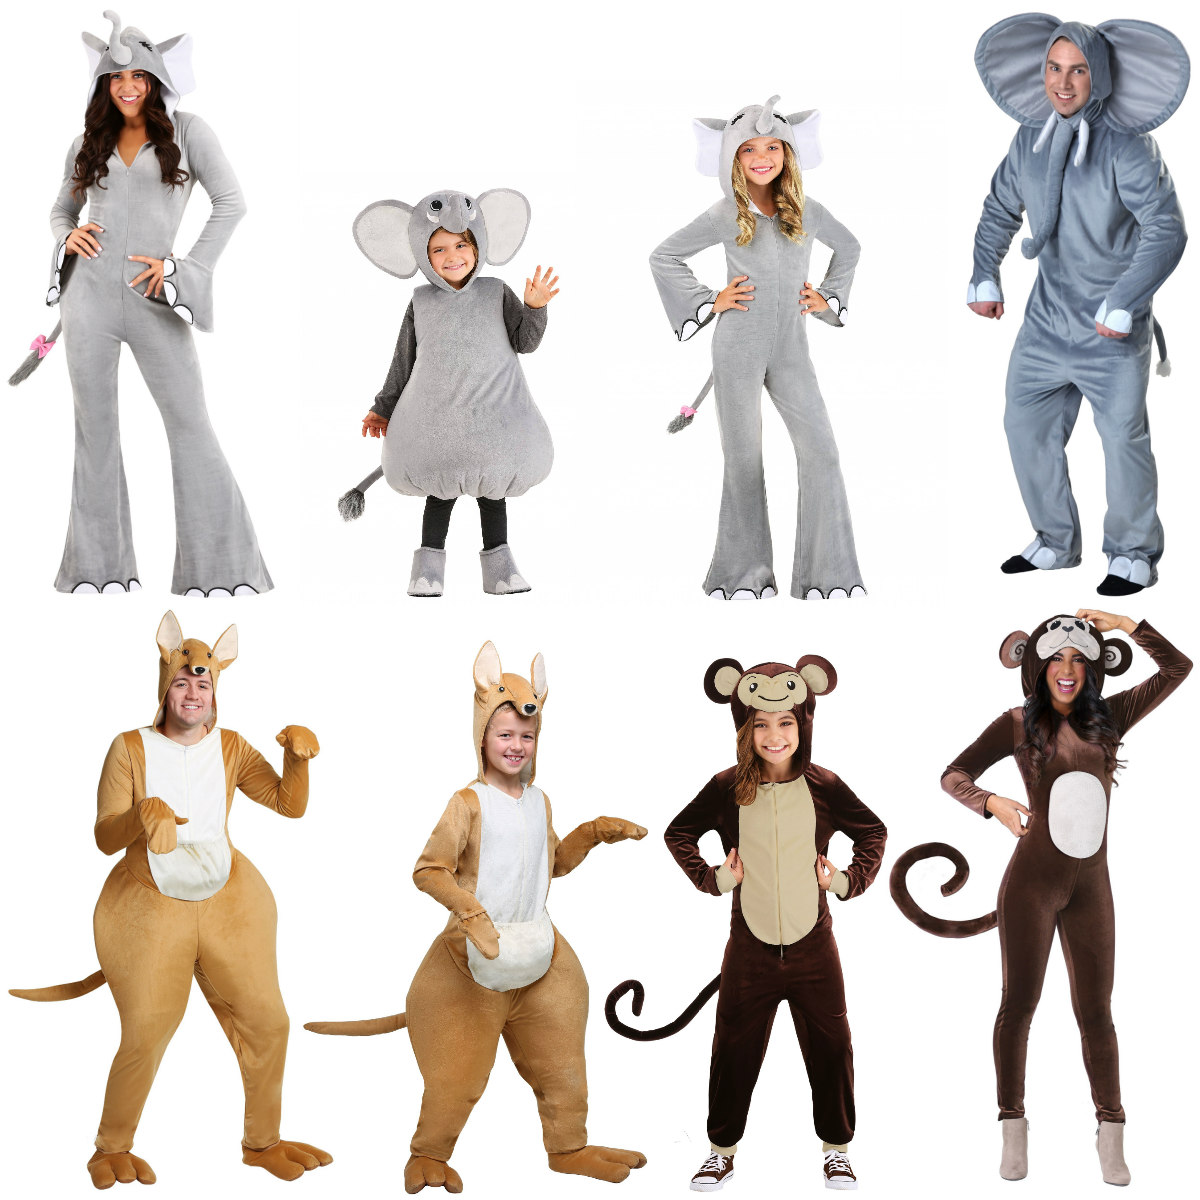 Horton Hears a Who costumes